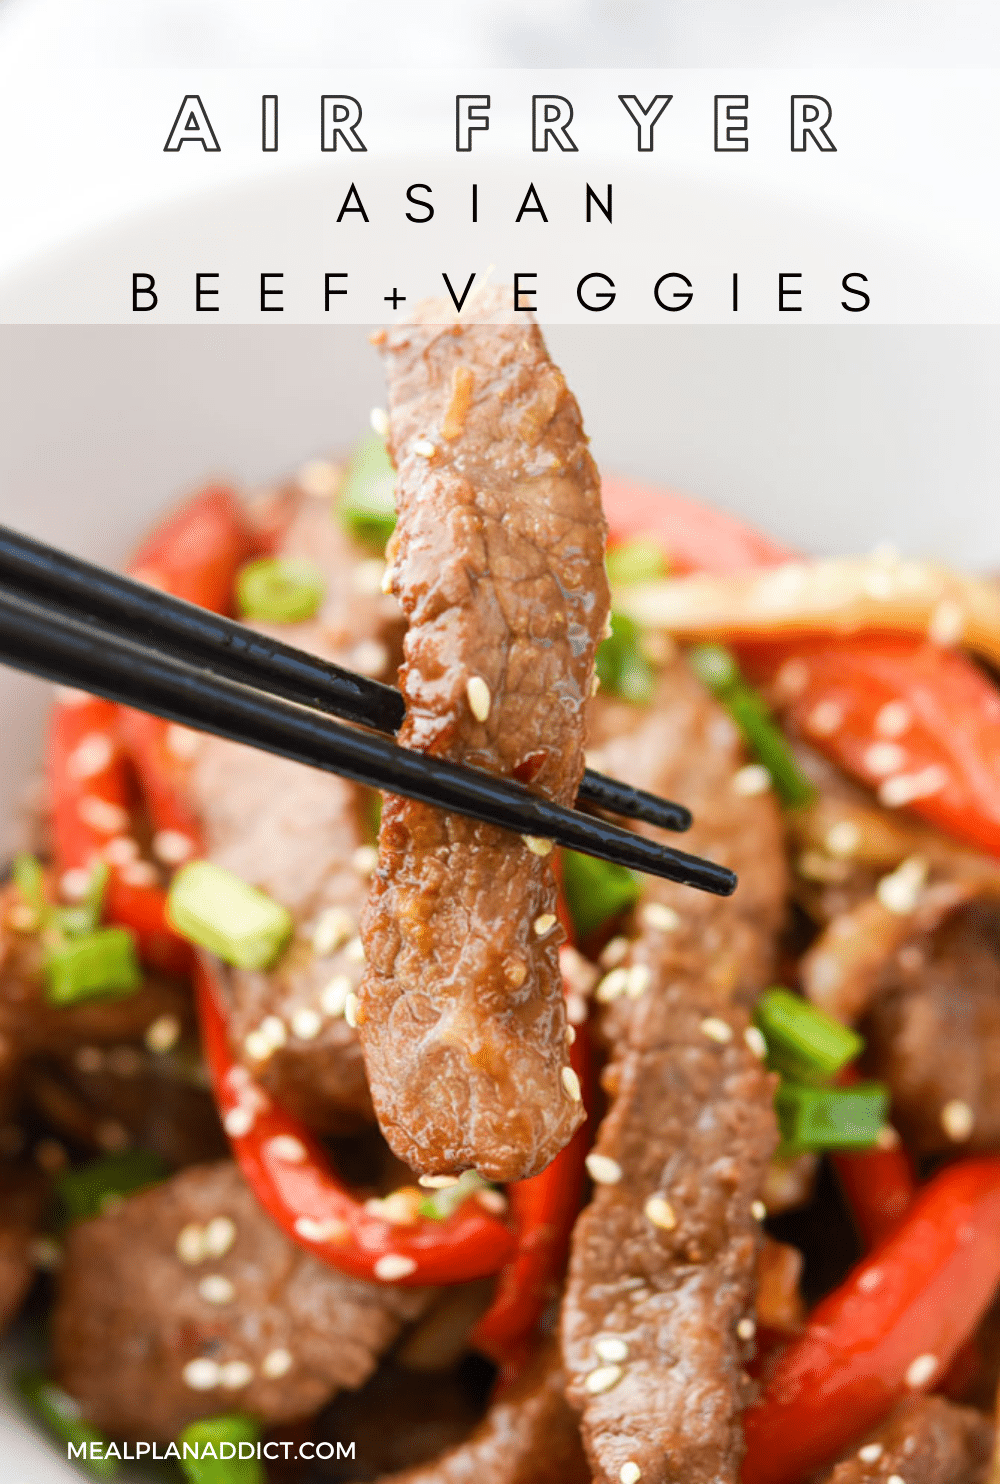 Asian beef pin for Pinterest